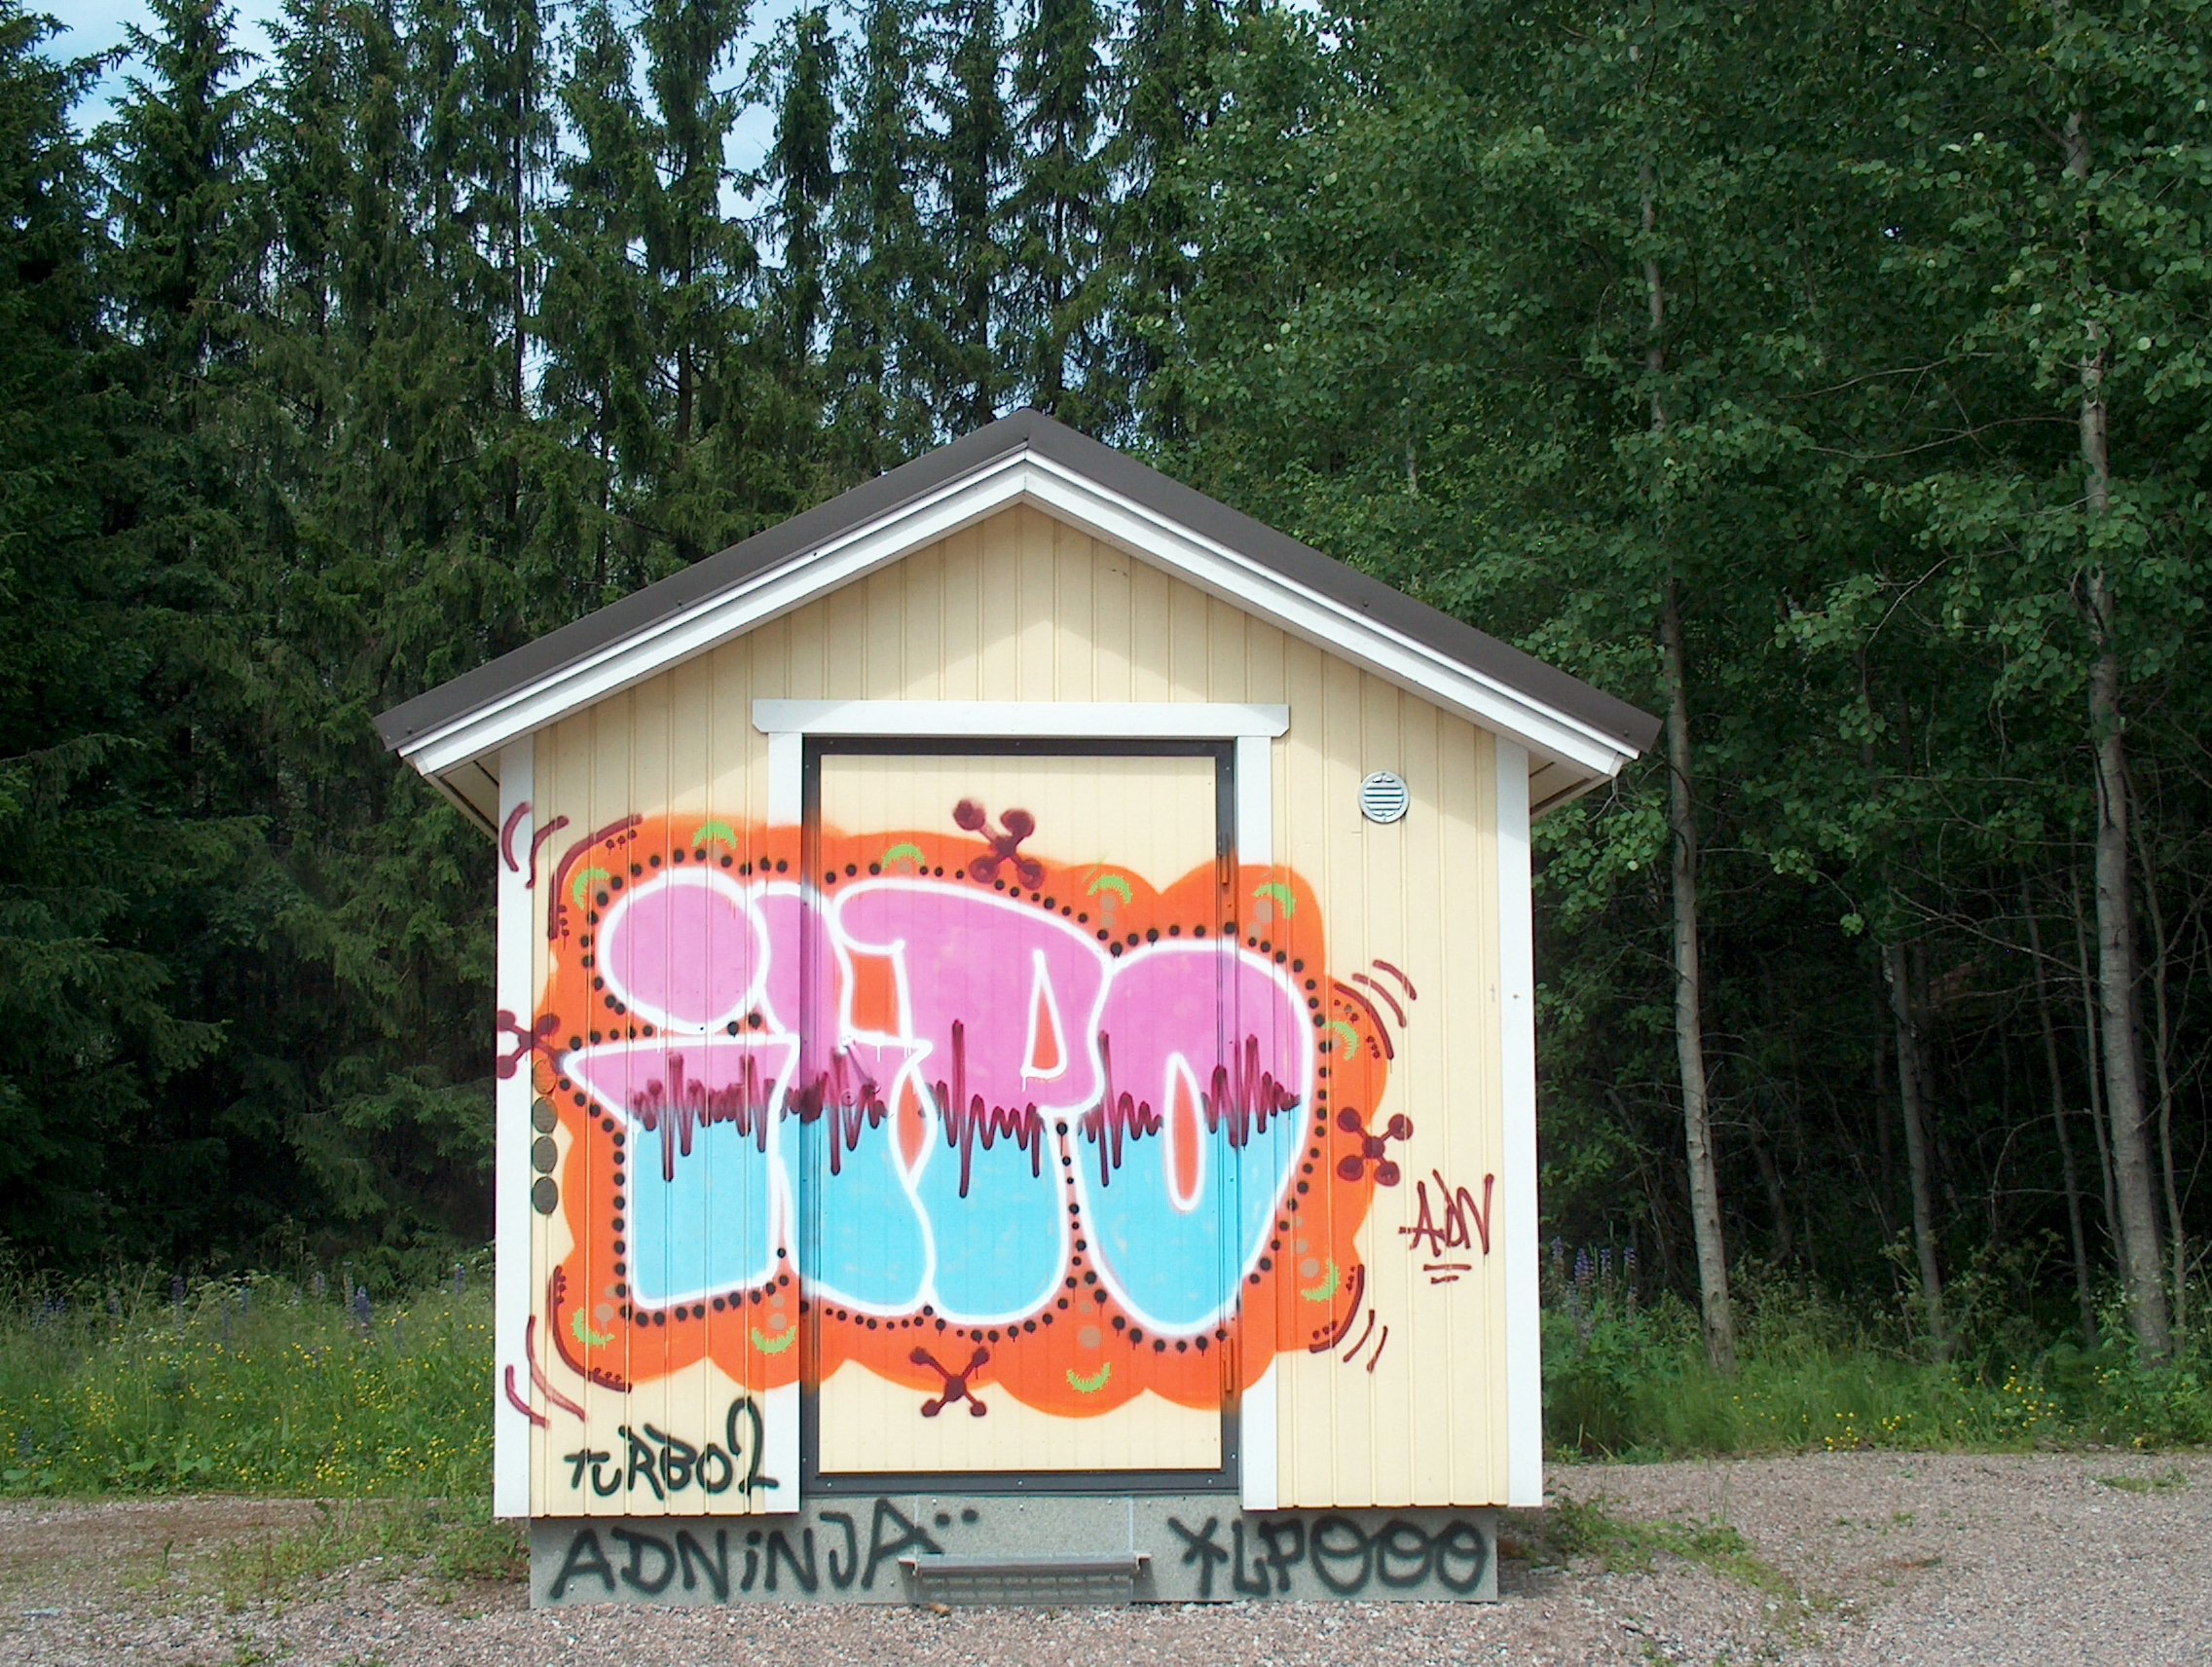 File:Graffiti in Kerava H5945 C - Wikimedia Commons